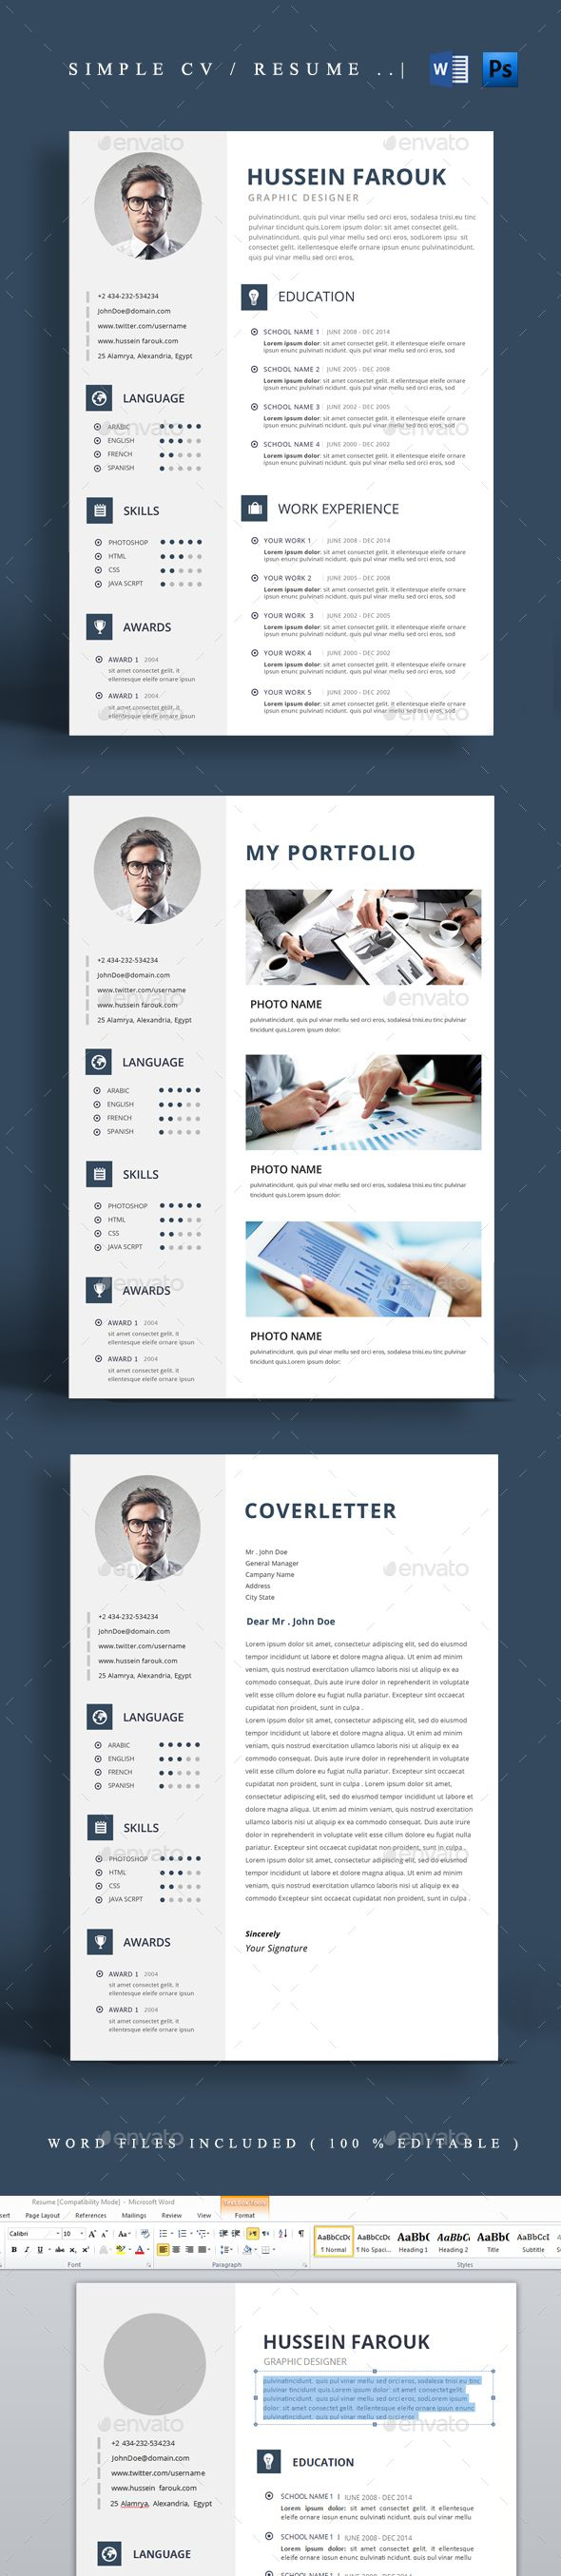 best images about creative cv resume simple cv resume